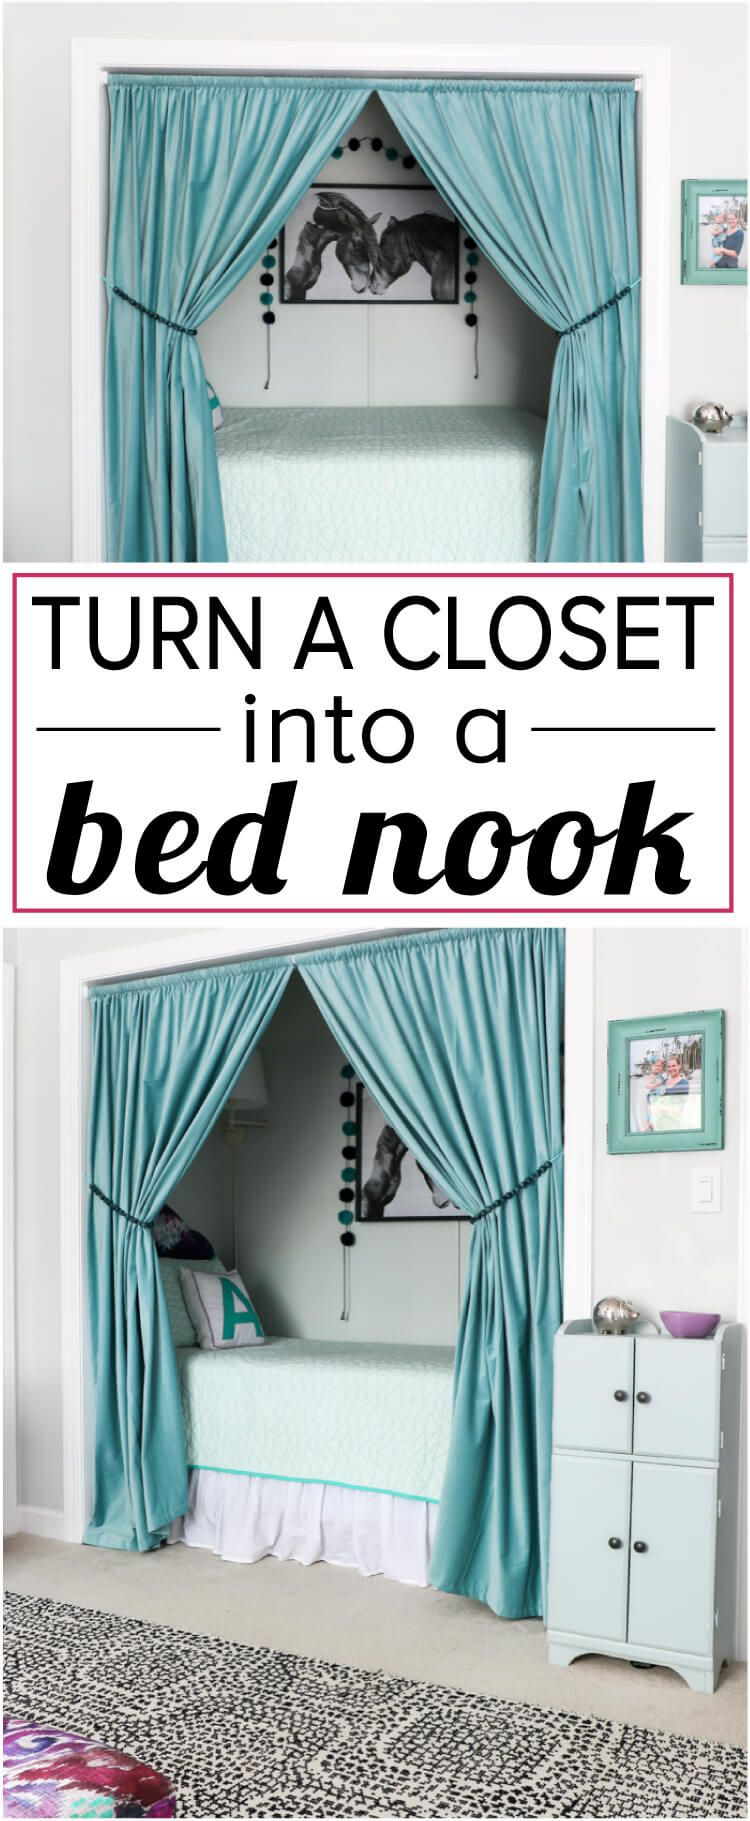 How To Turn A Garage Into A Bedroom: How To Turn A Closet Into A Bed Nook